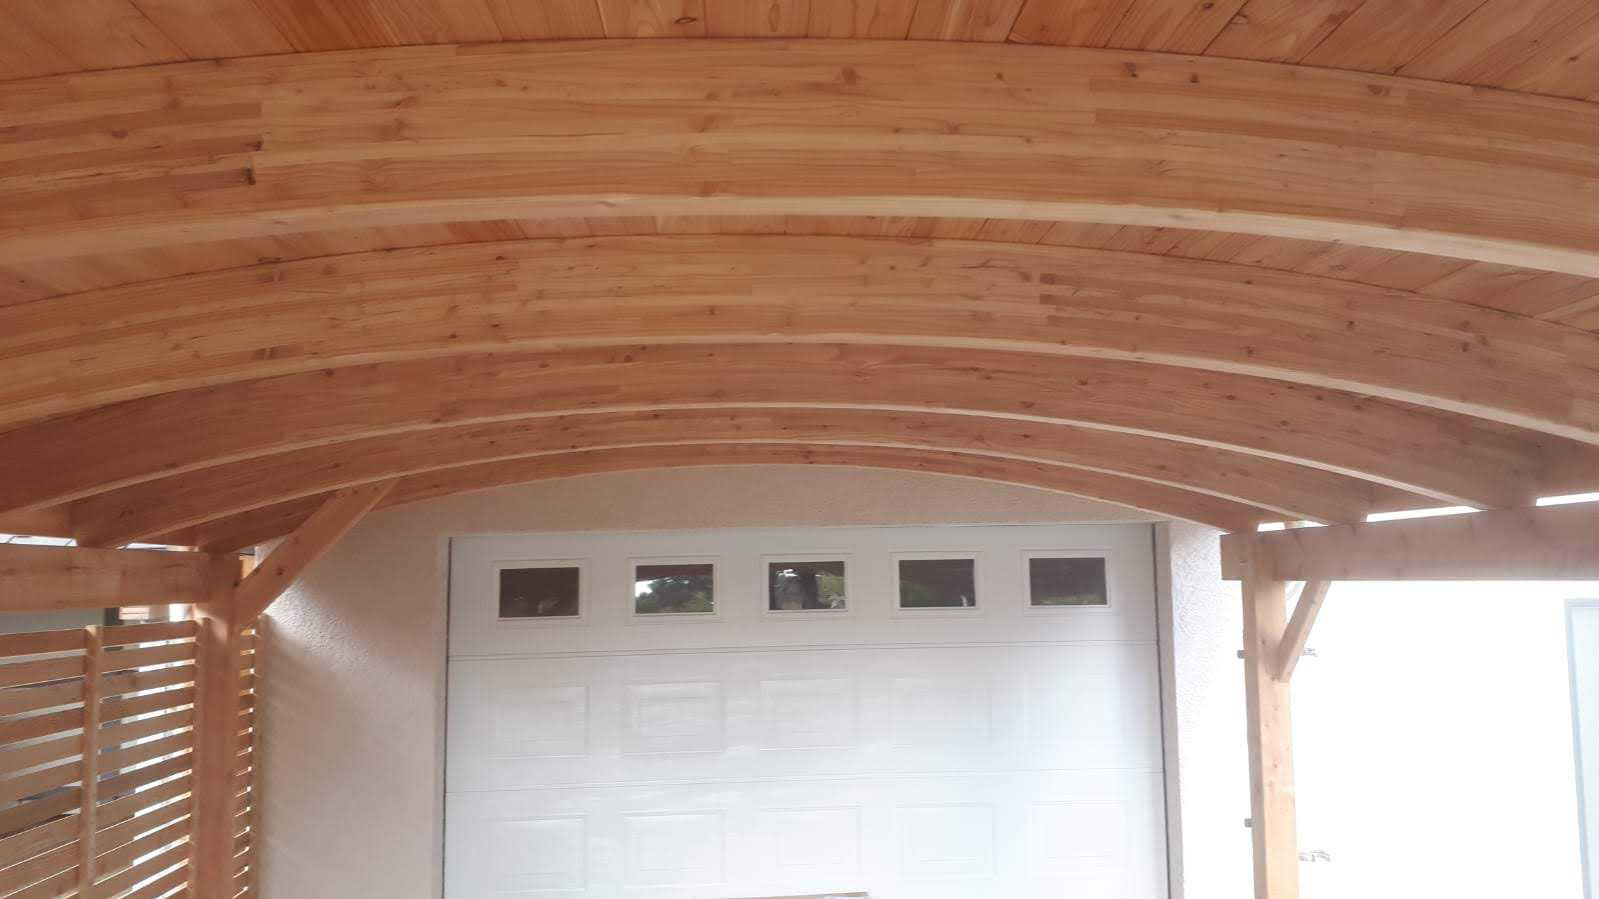 Dach Carport Bogendach FREESE Holz